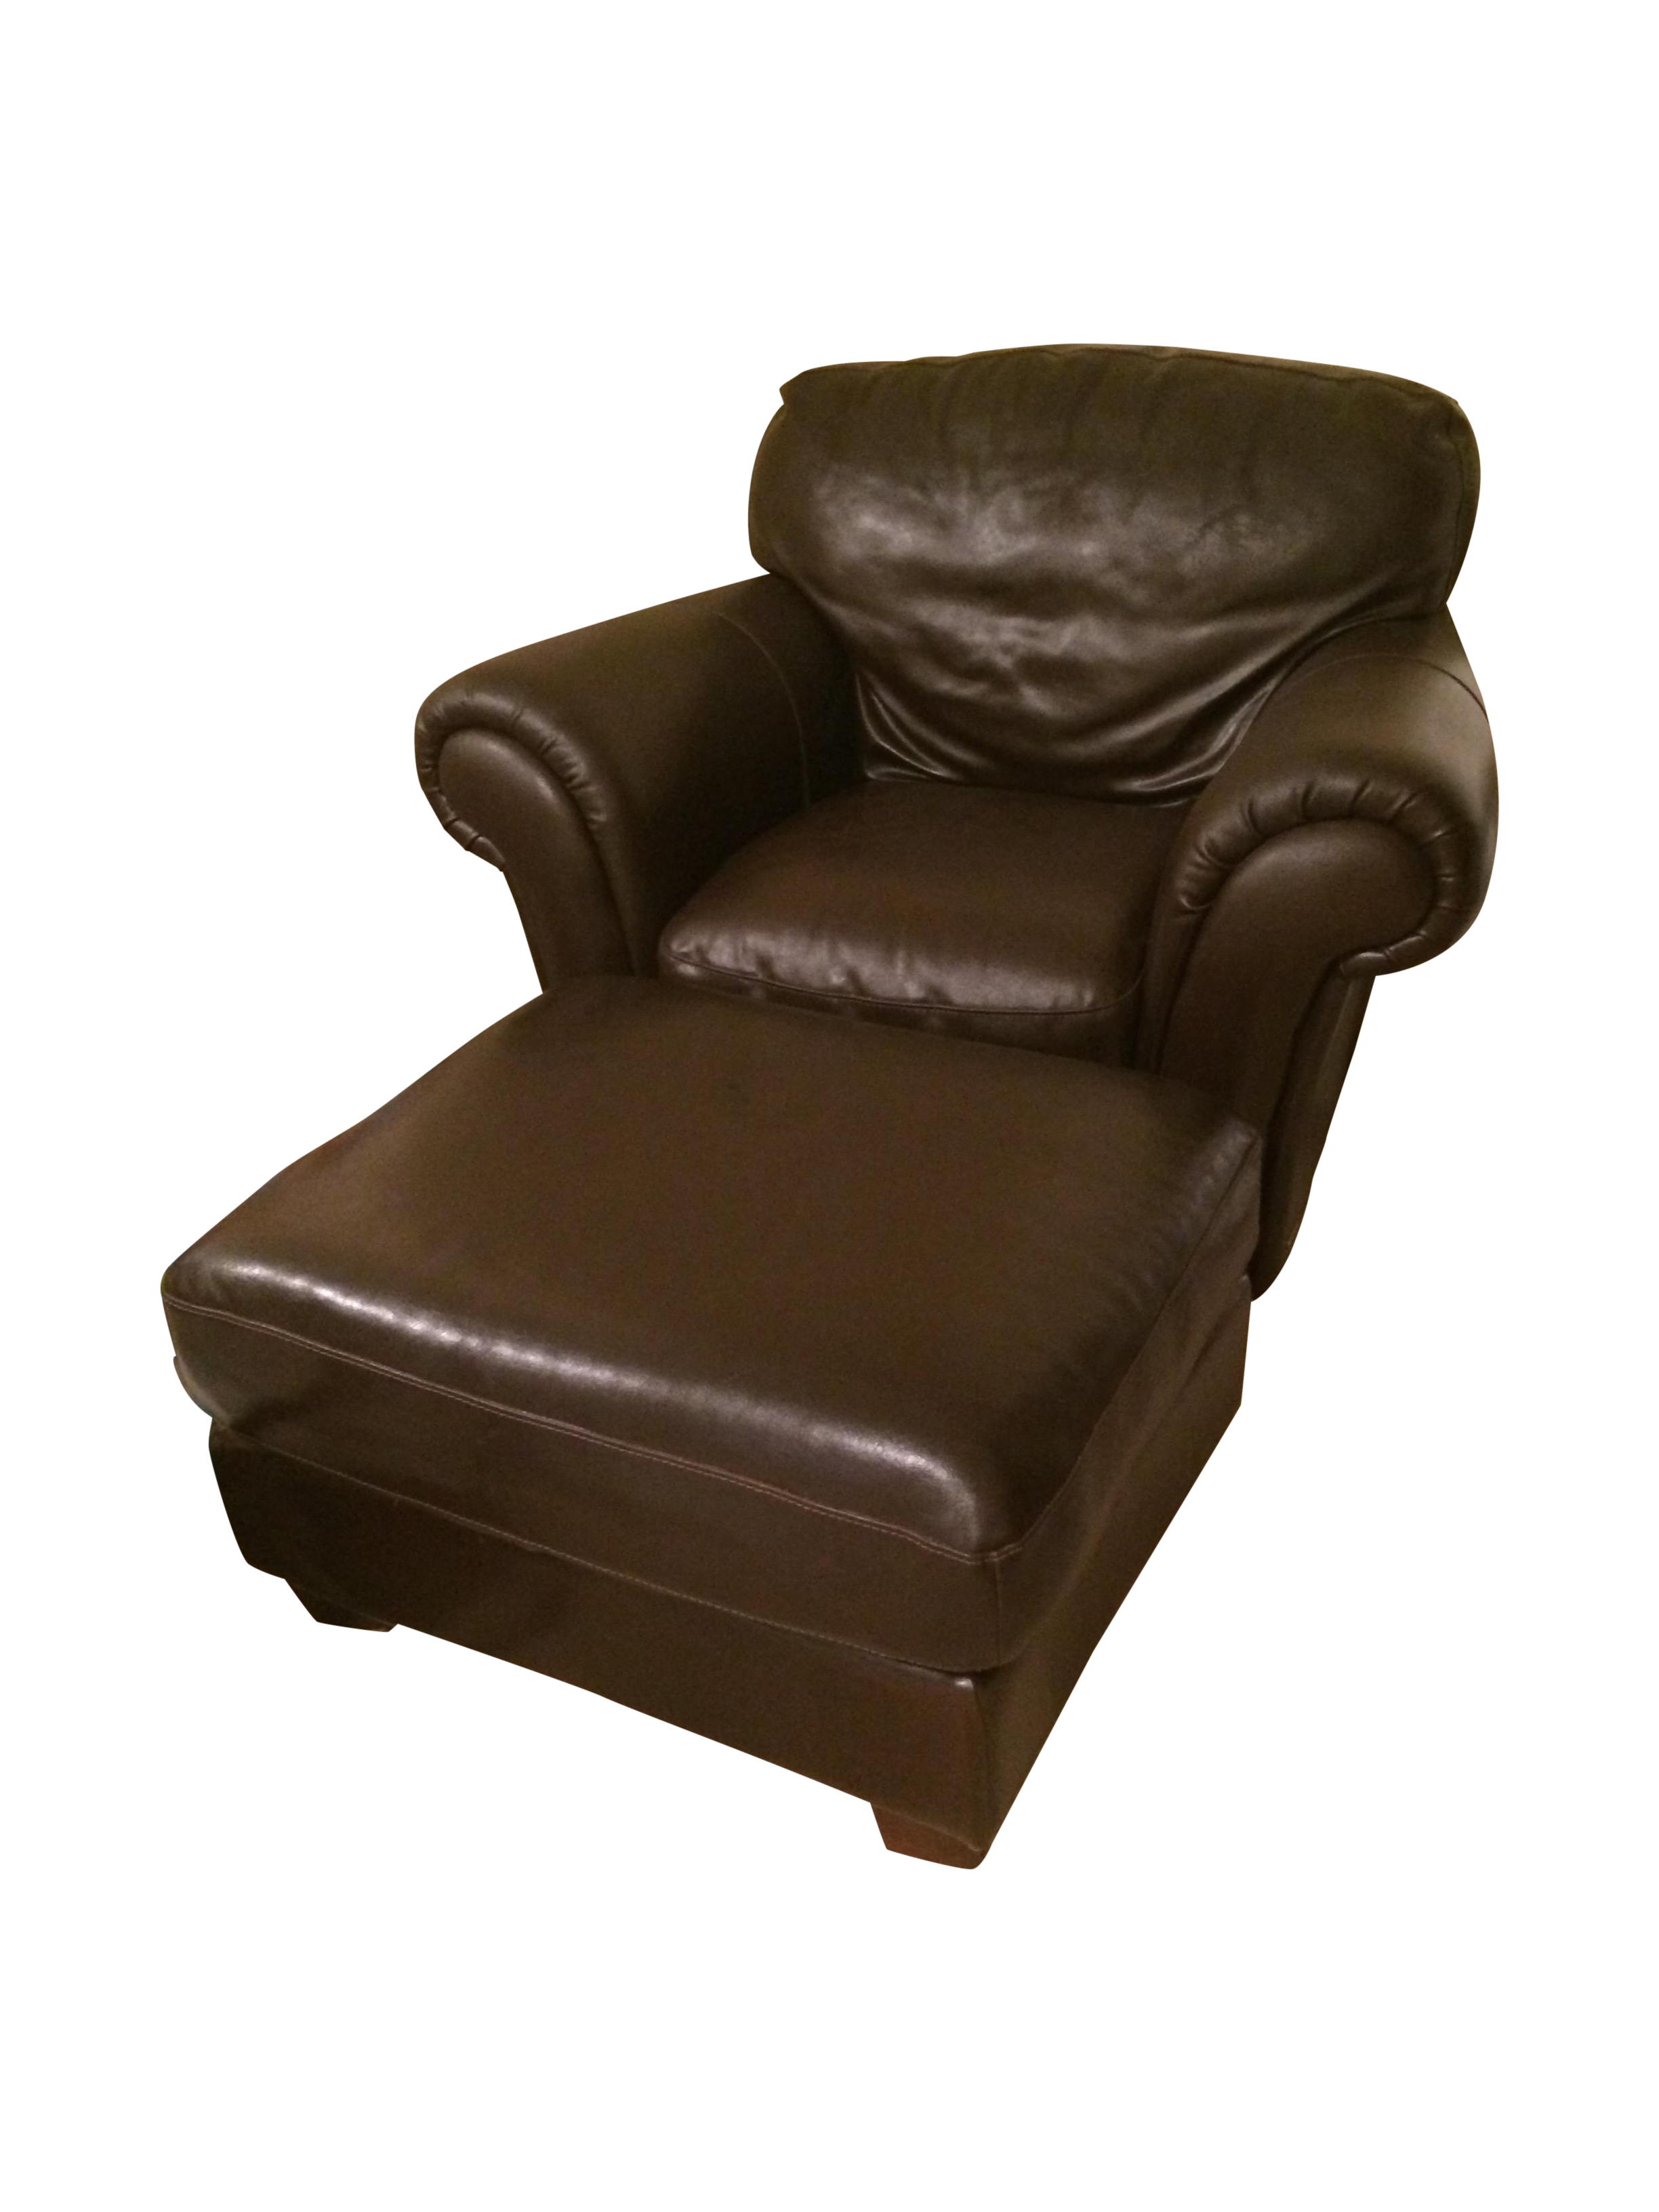 Natuzzi Italsofa Leather Chair And Ottoman Set Chairish